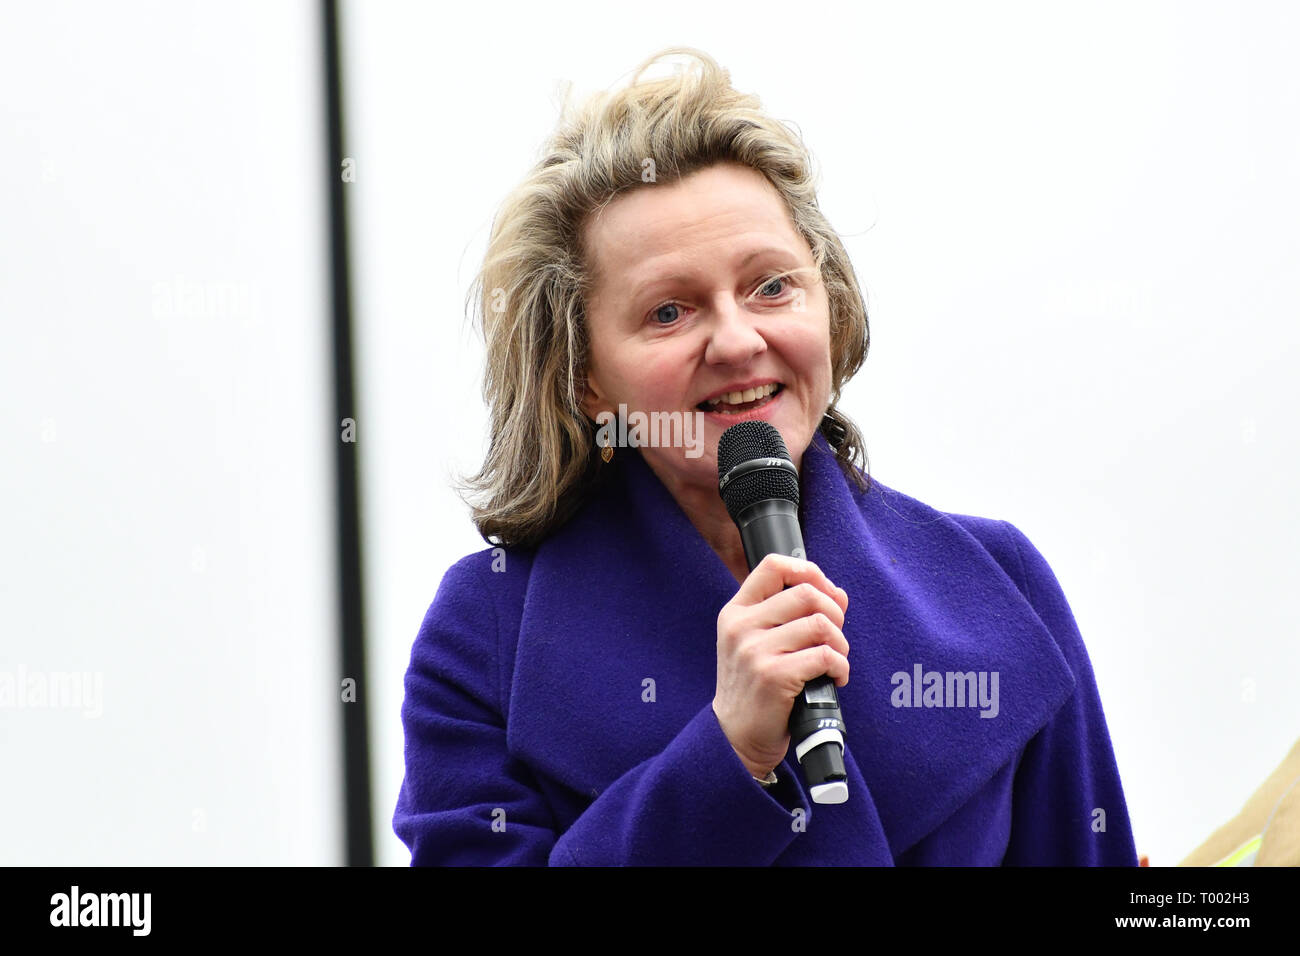 London, UK . 16th March 2019. Stand Up To Racism organize a march of a UN Anti-Racism Day Demonstration and march of  the horrific Islamophobic terrorist attack on a mosque in Christchurch, New Zealand, that has left 49 dead on 16 March 2019, London, UK. Credit: Picture Capital/Alamy Live News - Stock Image